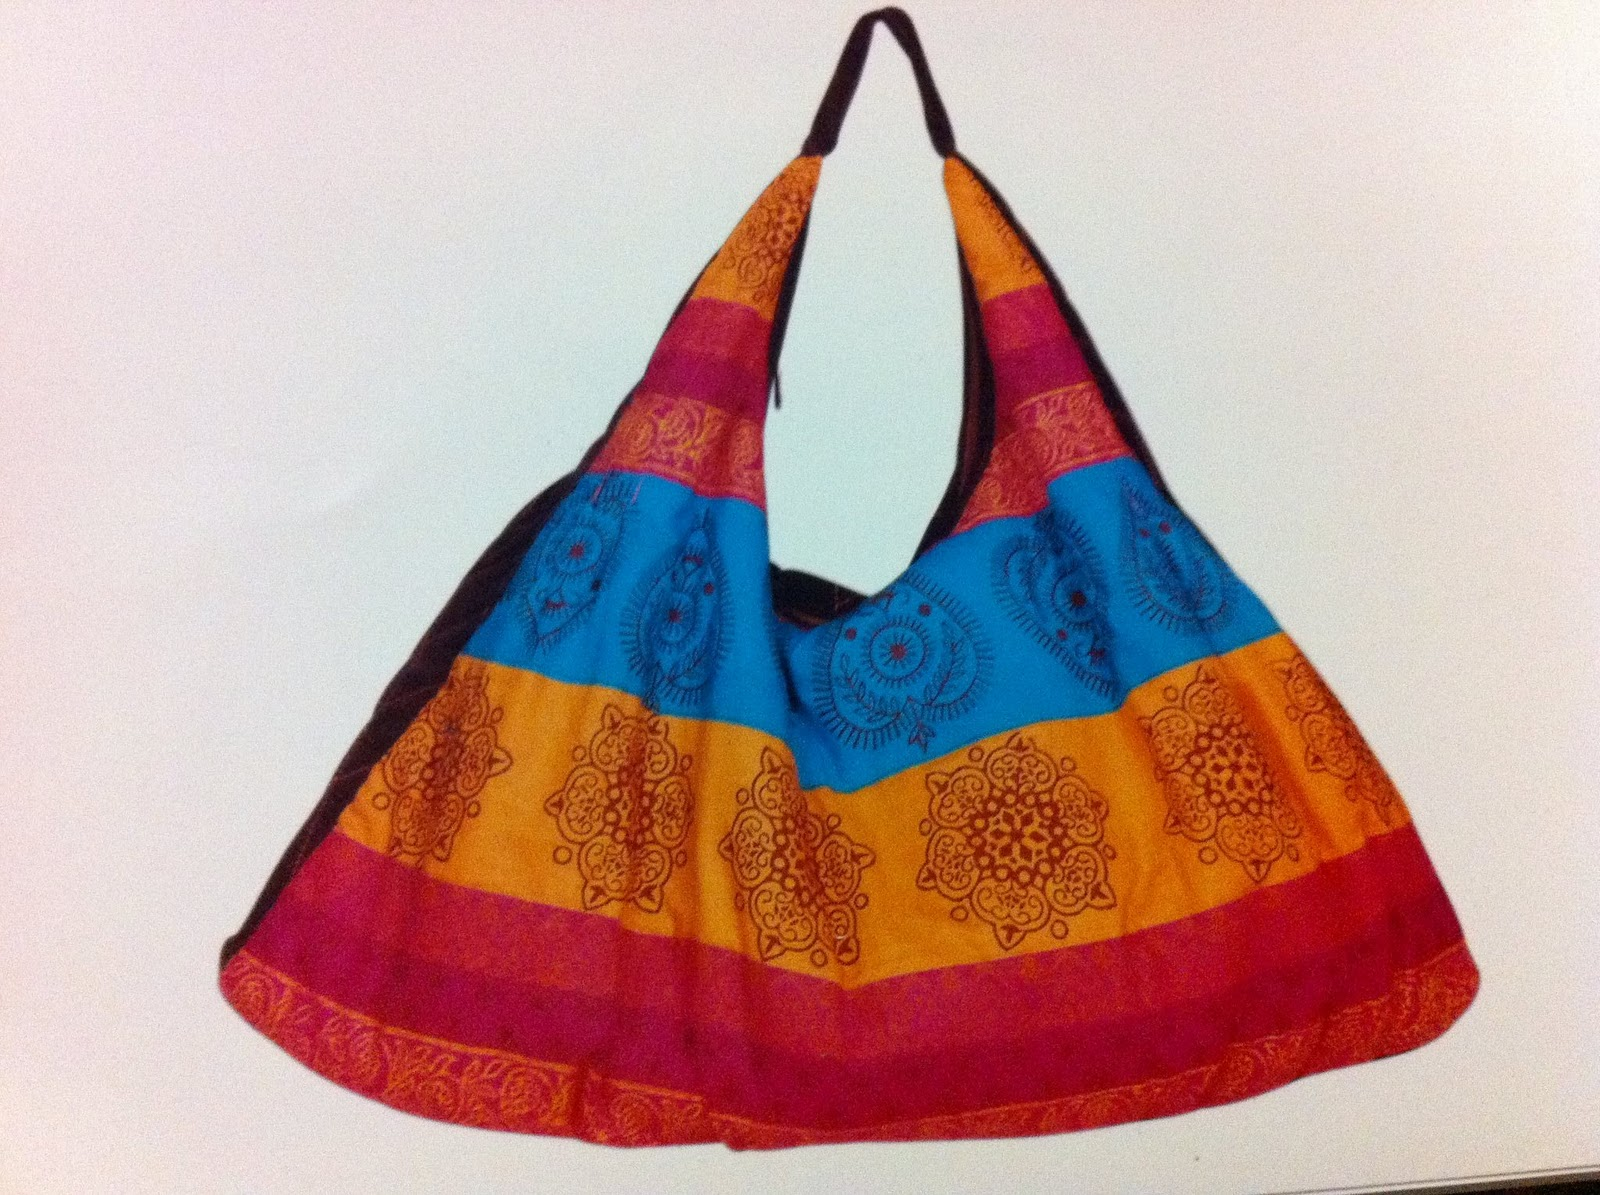 Saba Pirani Presents Hand Bags Collection For Those Who Care About Their Style Elegance Have A Look At Her Colorful Given Below